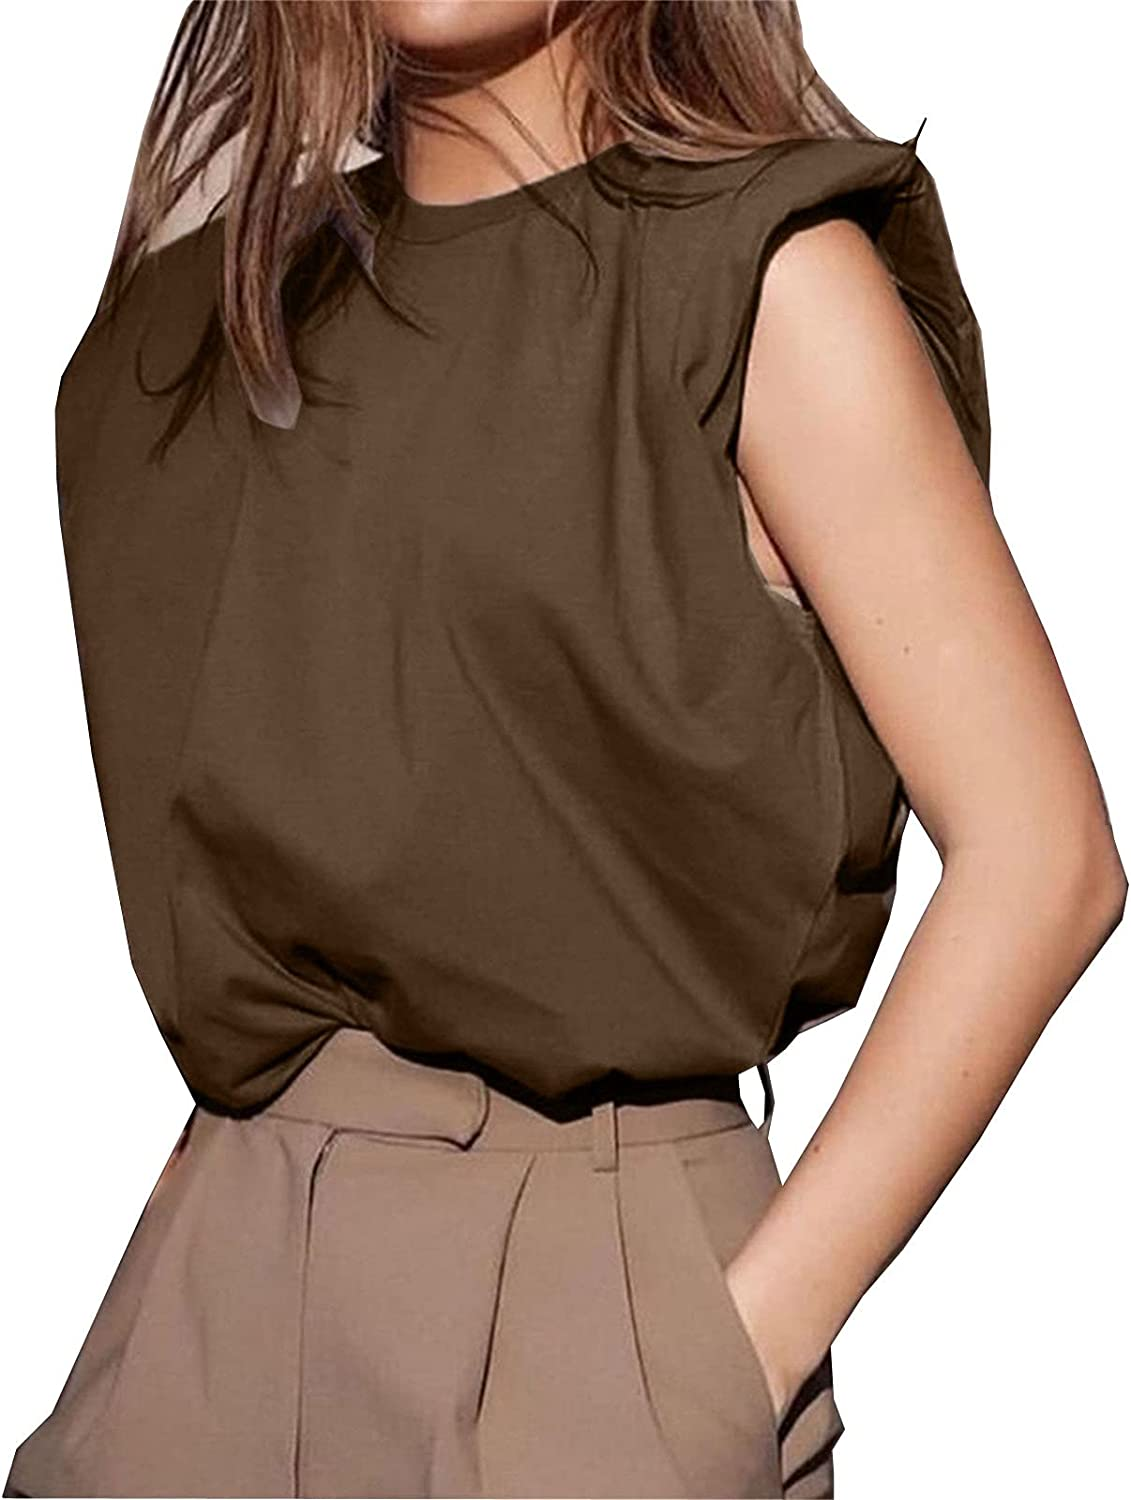 Women Fashion Solid Tank Tops Sleeveless Round Neck Tee Shirts Loose Outerwear Top Vest